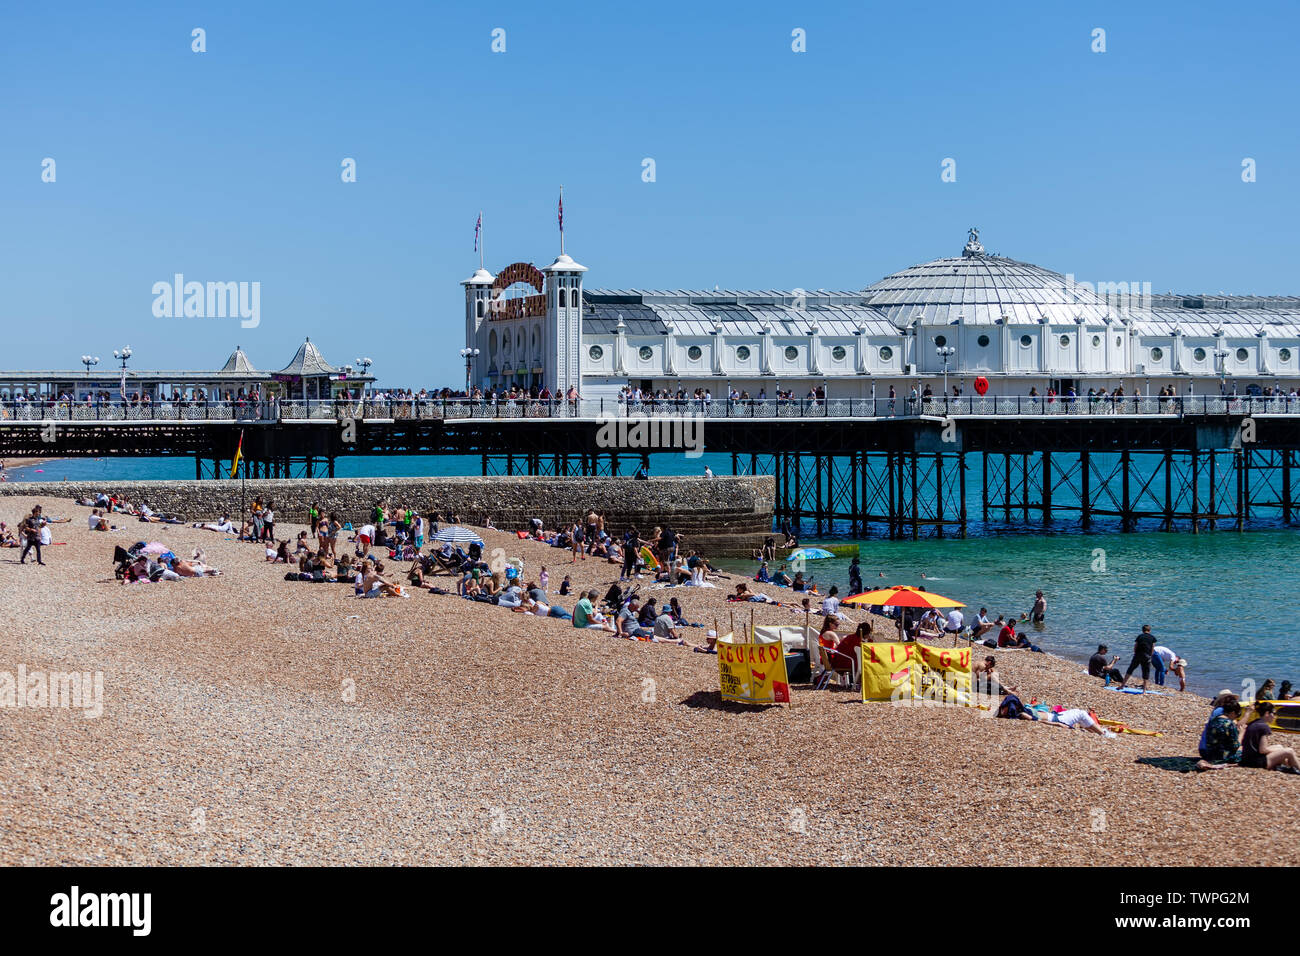 Brighton, UK. 22nd June 2019: After a week of unsettled weather, families managed to get a sun filled day on Brighton Beaches Credit: SEUK News/Alamy Live News - Stock Image